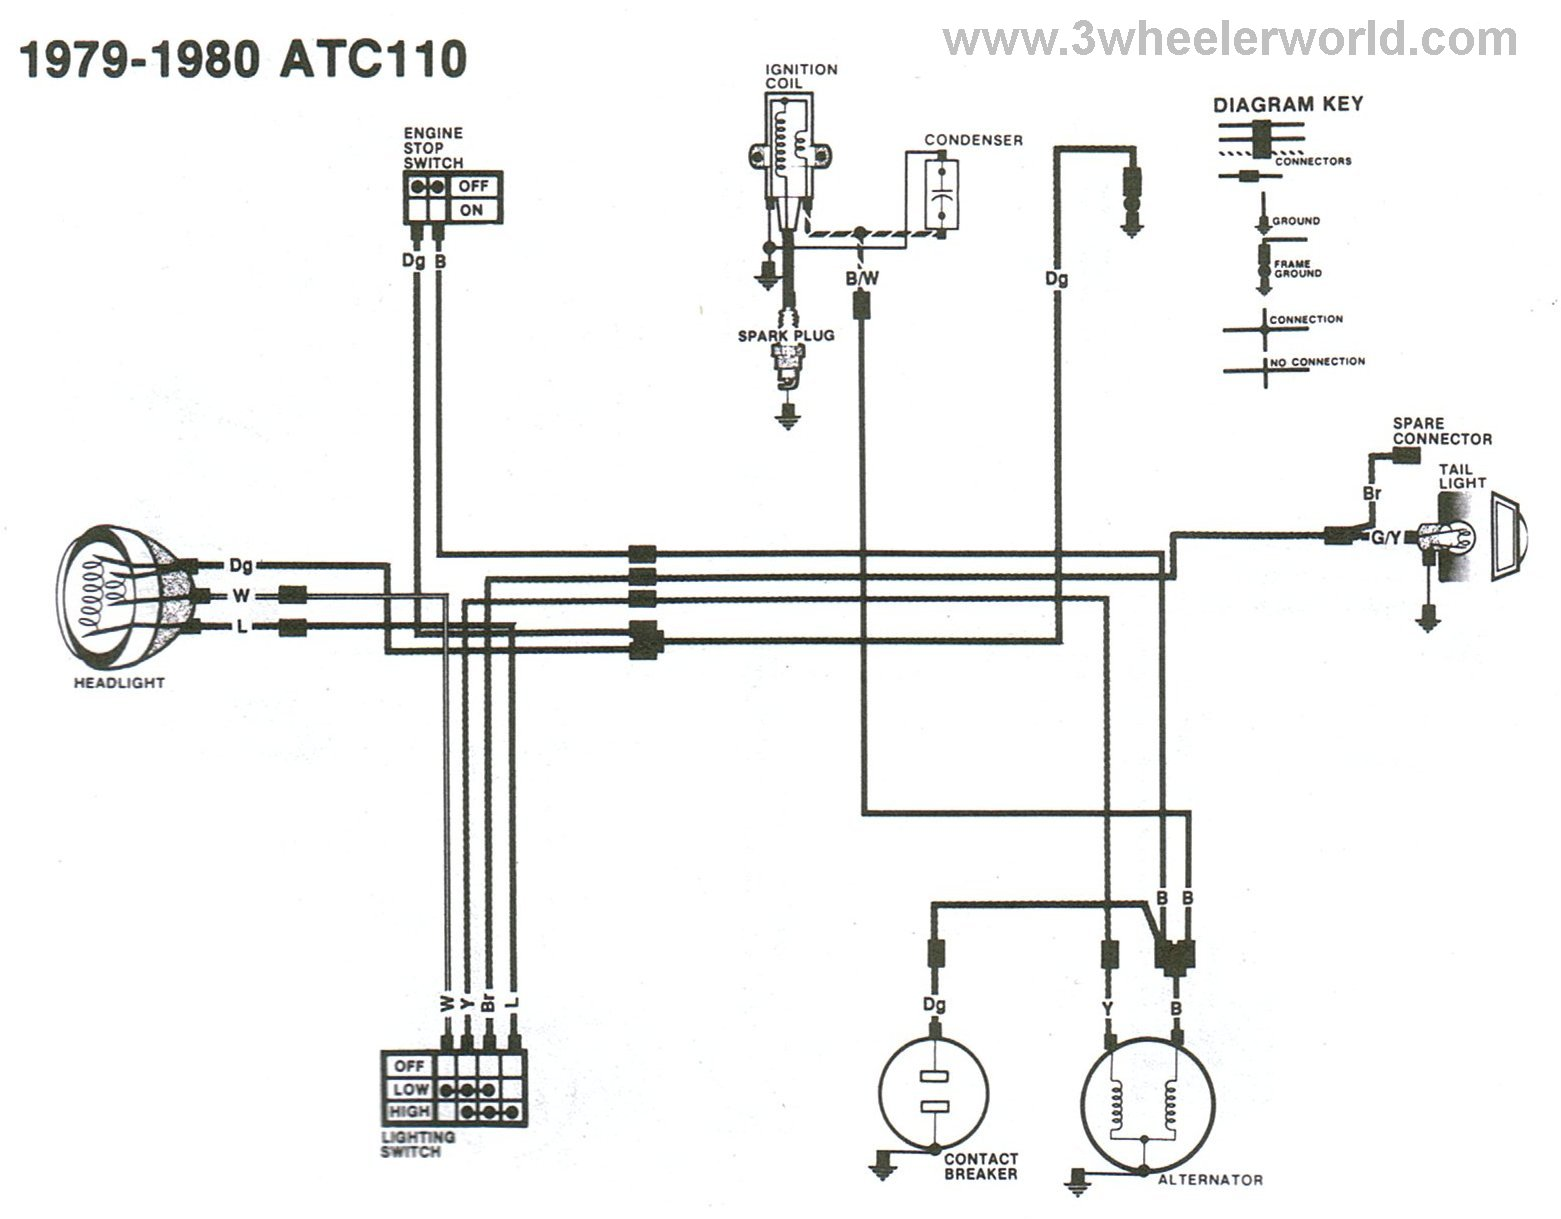 ATC110x79Thru80 1980 honda atc 110 wiring diagram honda 50 wiring diagram \u2022 wiring honda big red wiring diagram at cos-gaming.co